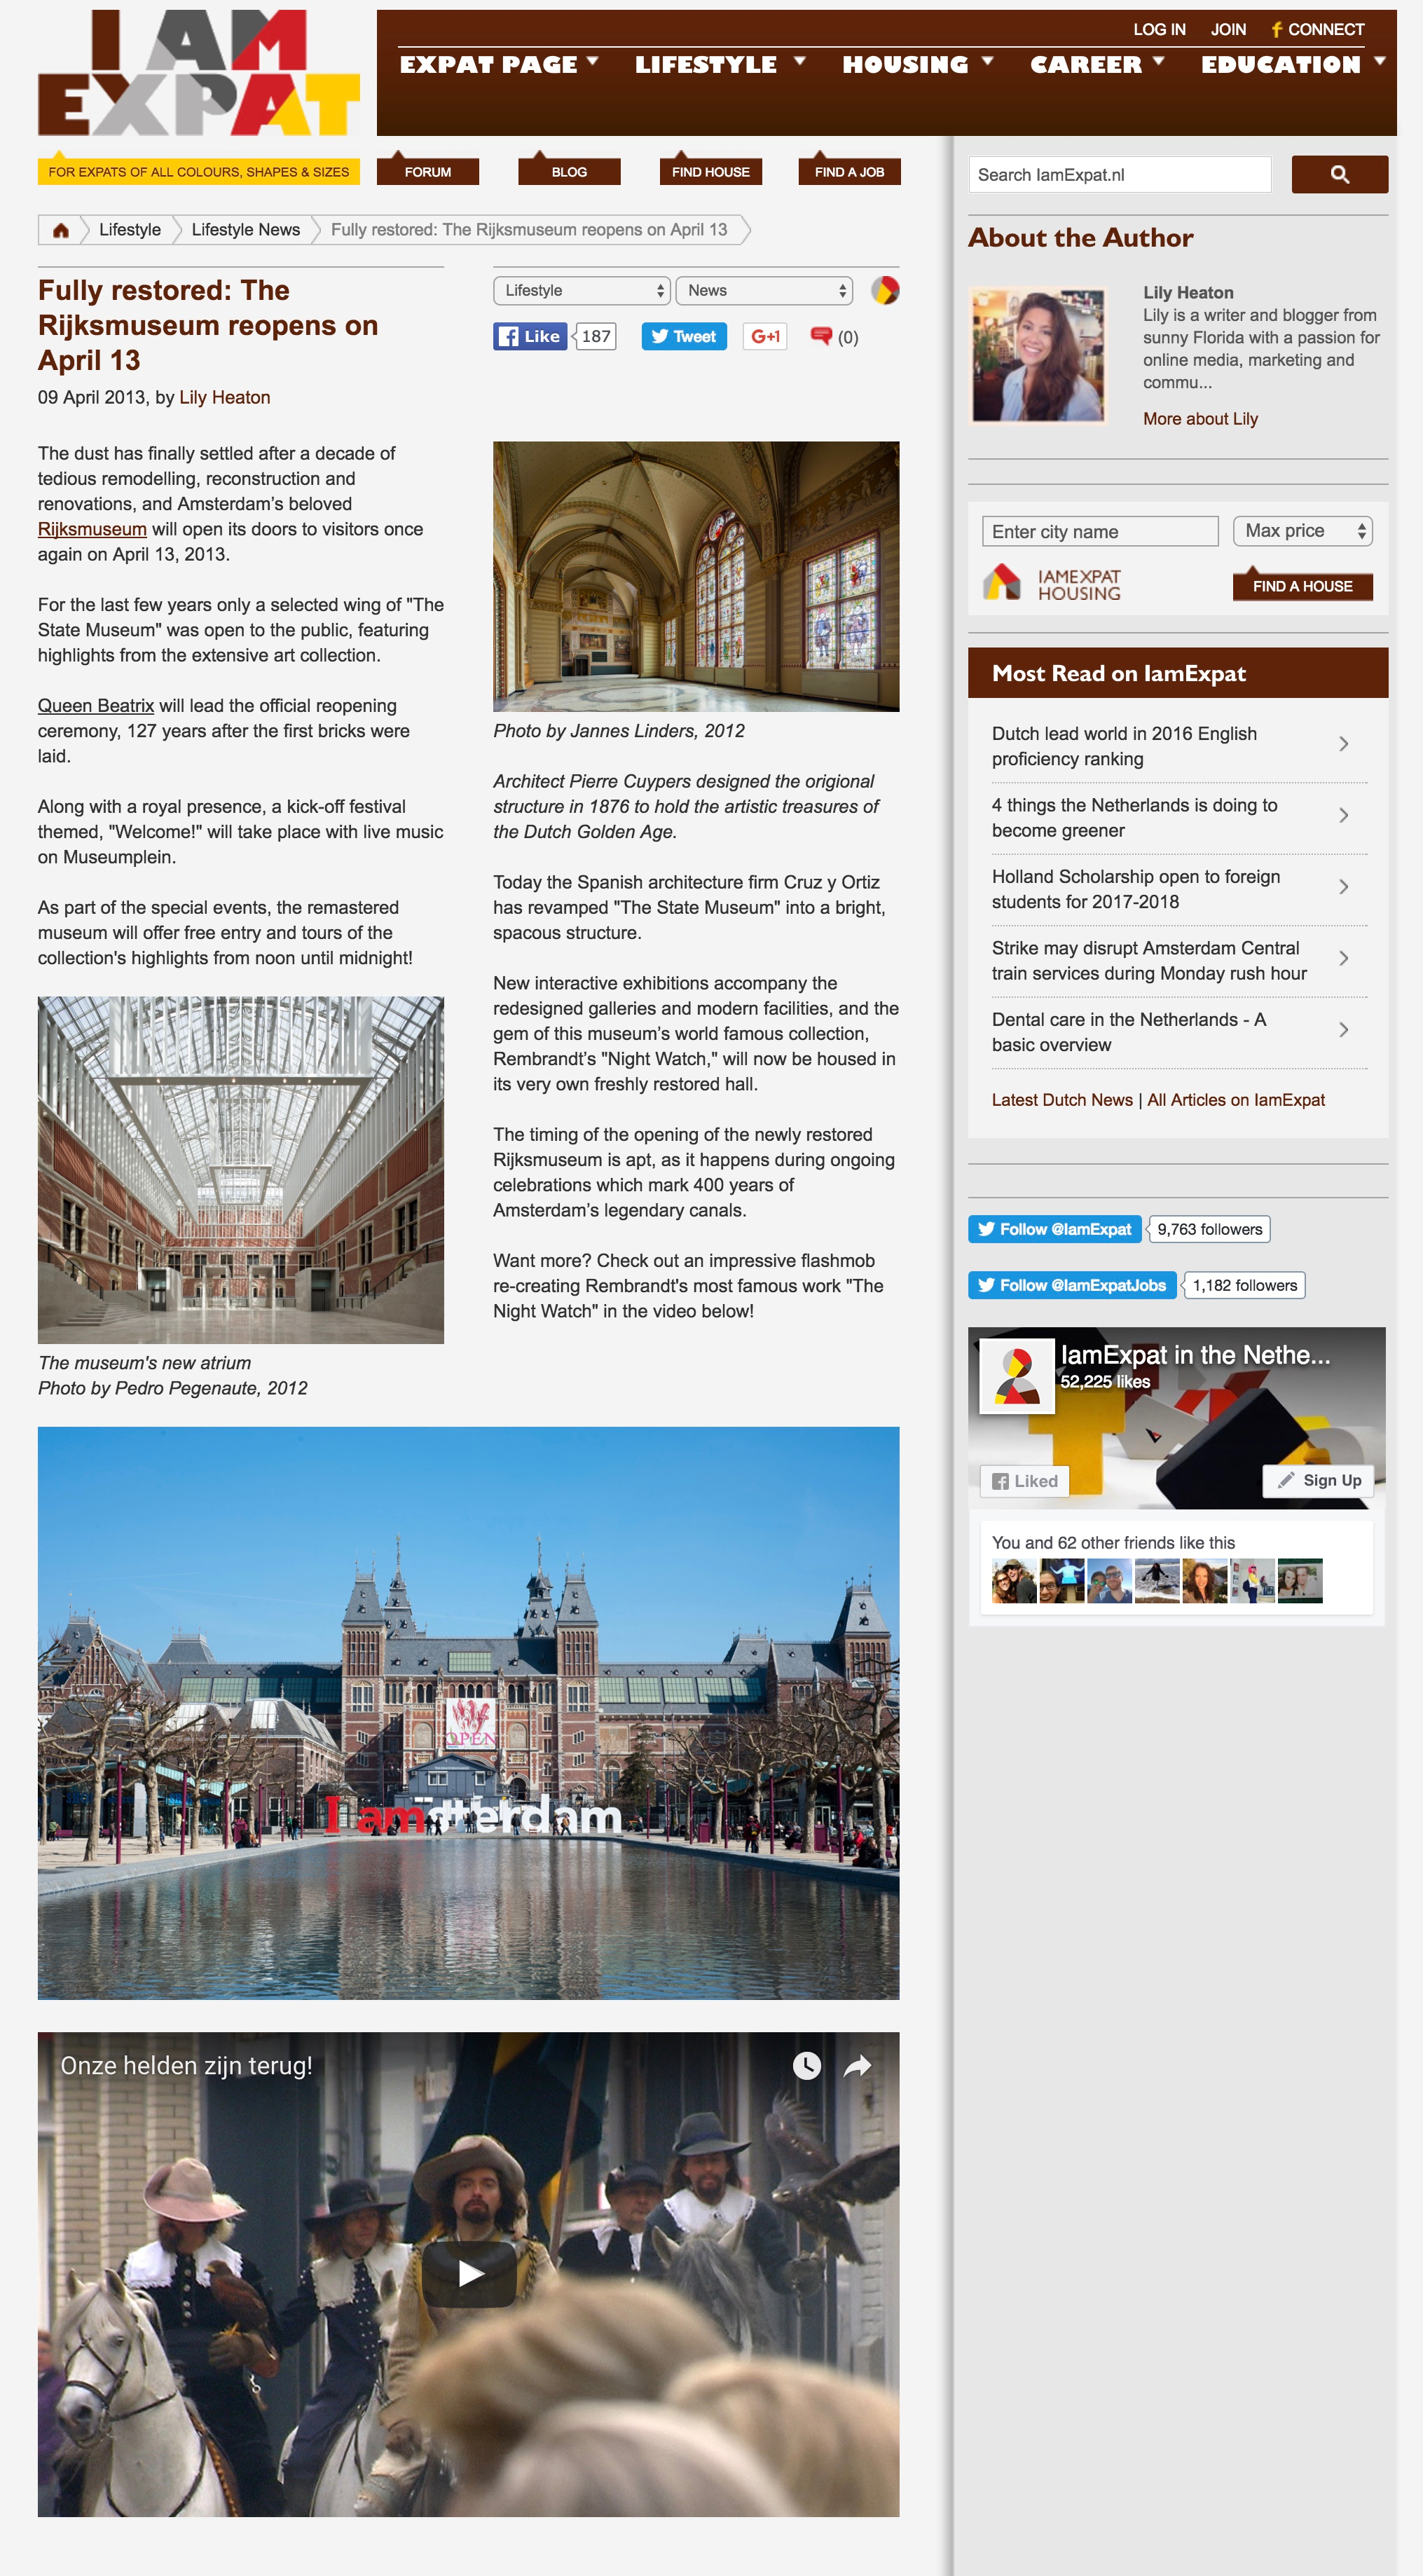 Fully restored: The Rijksmuseum Reopens